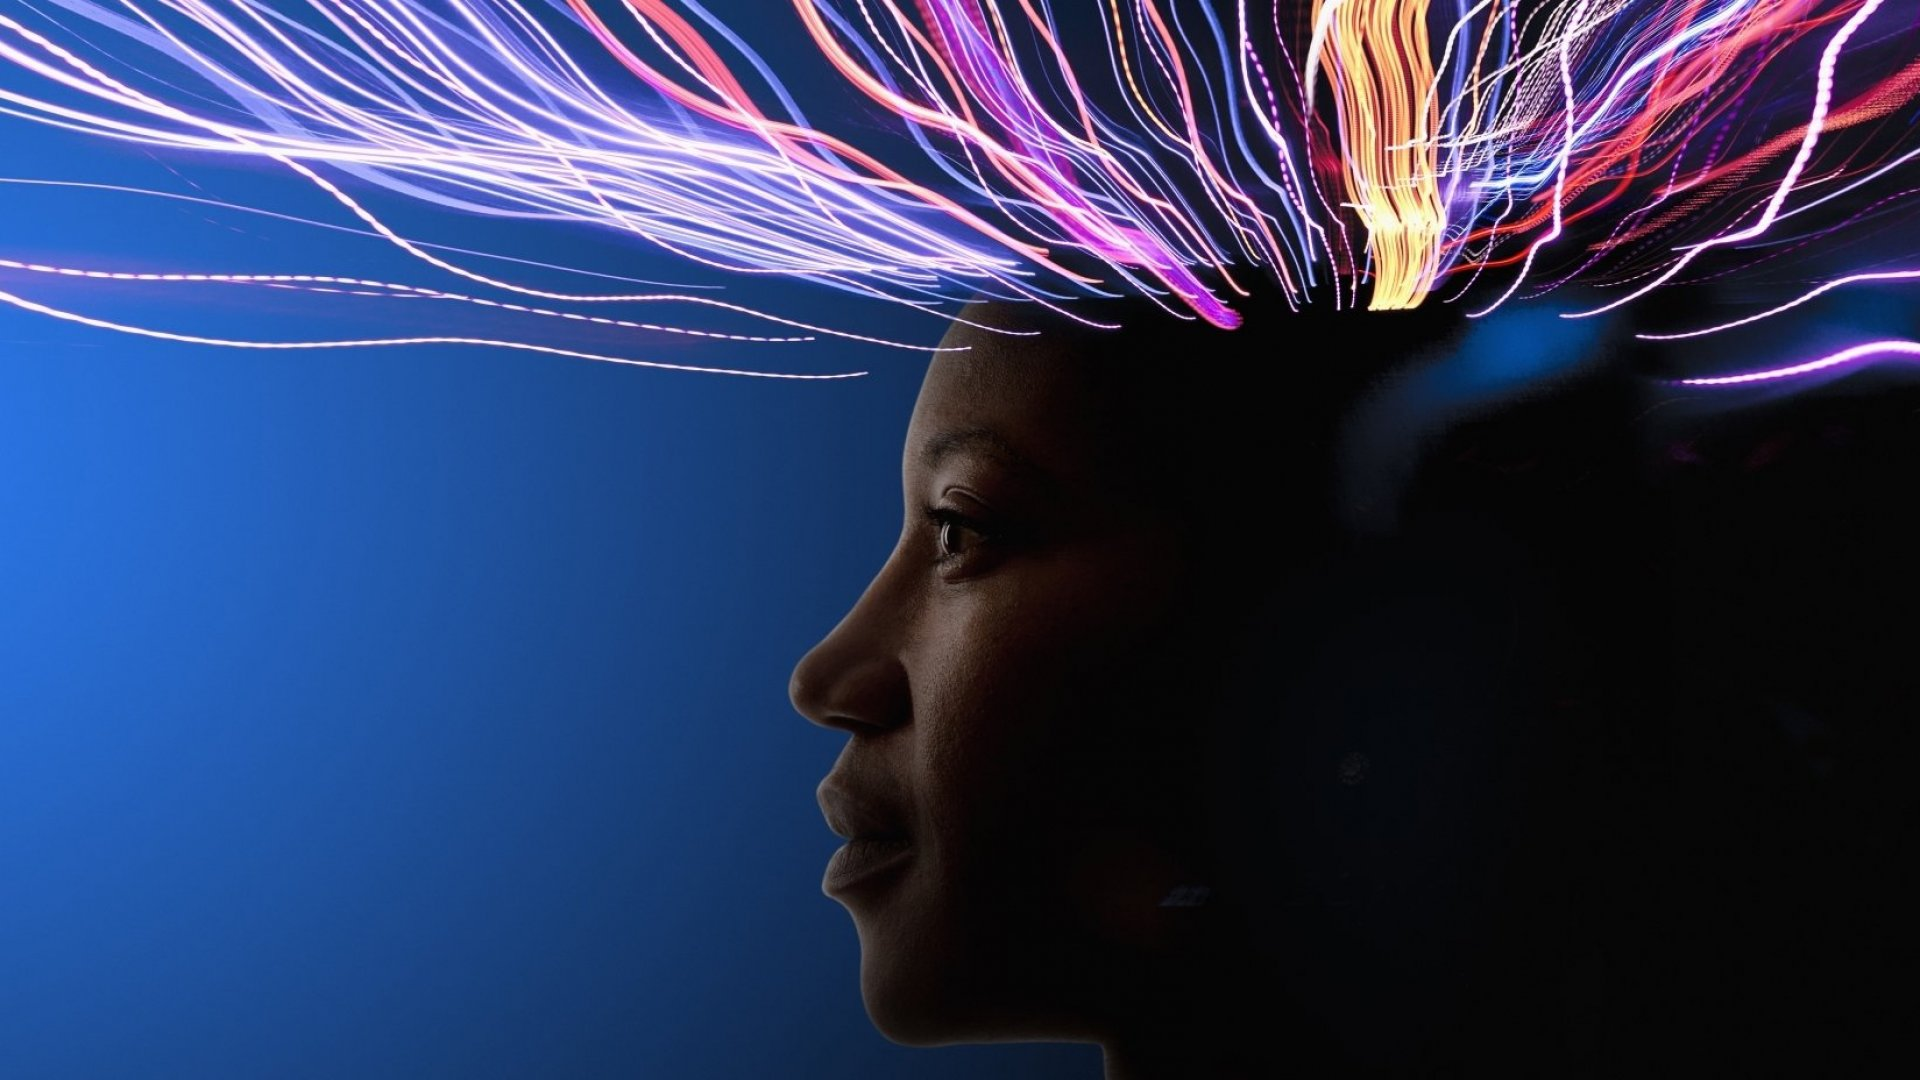 Is Your Emotional Intelligence High or Low? Here Are 10 Ways to Find Out